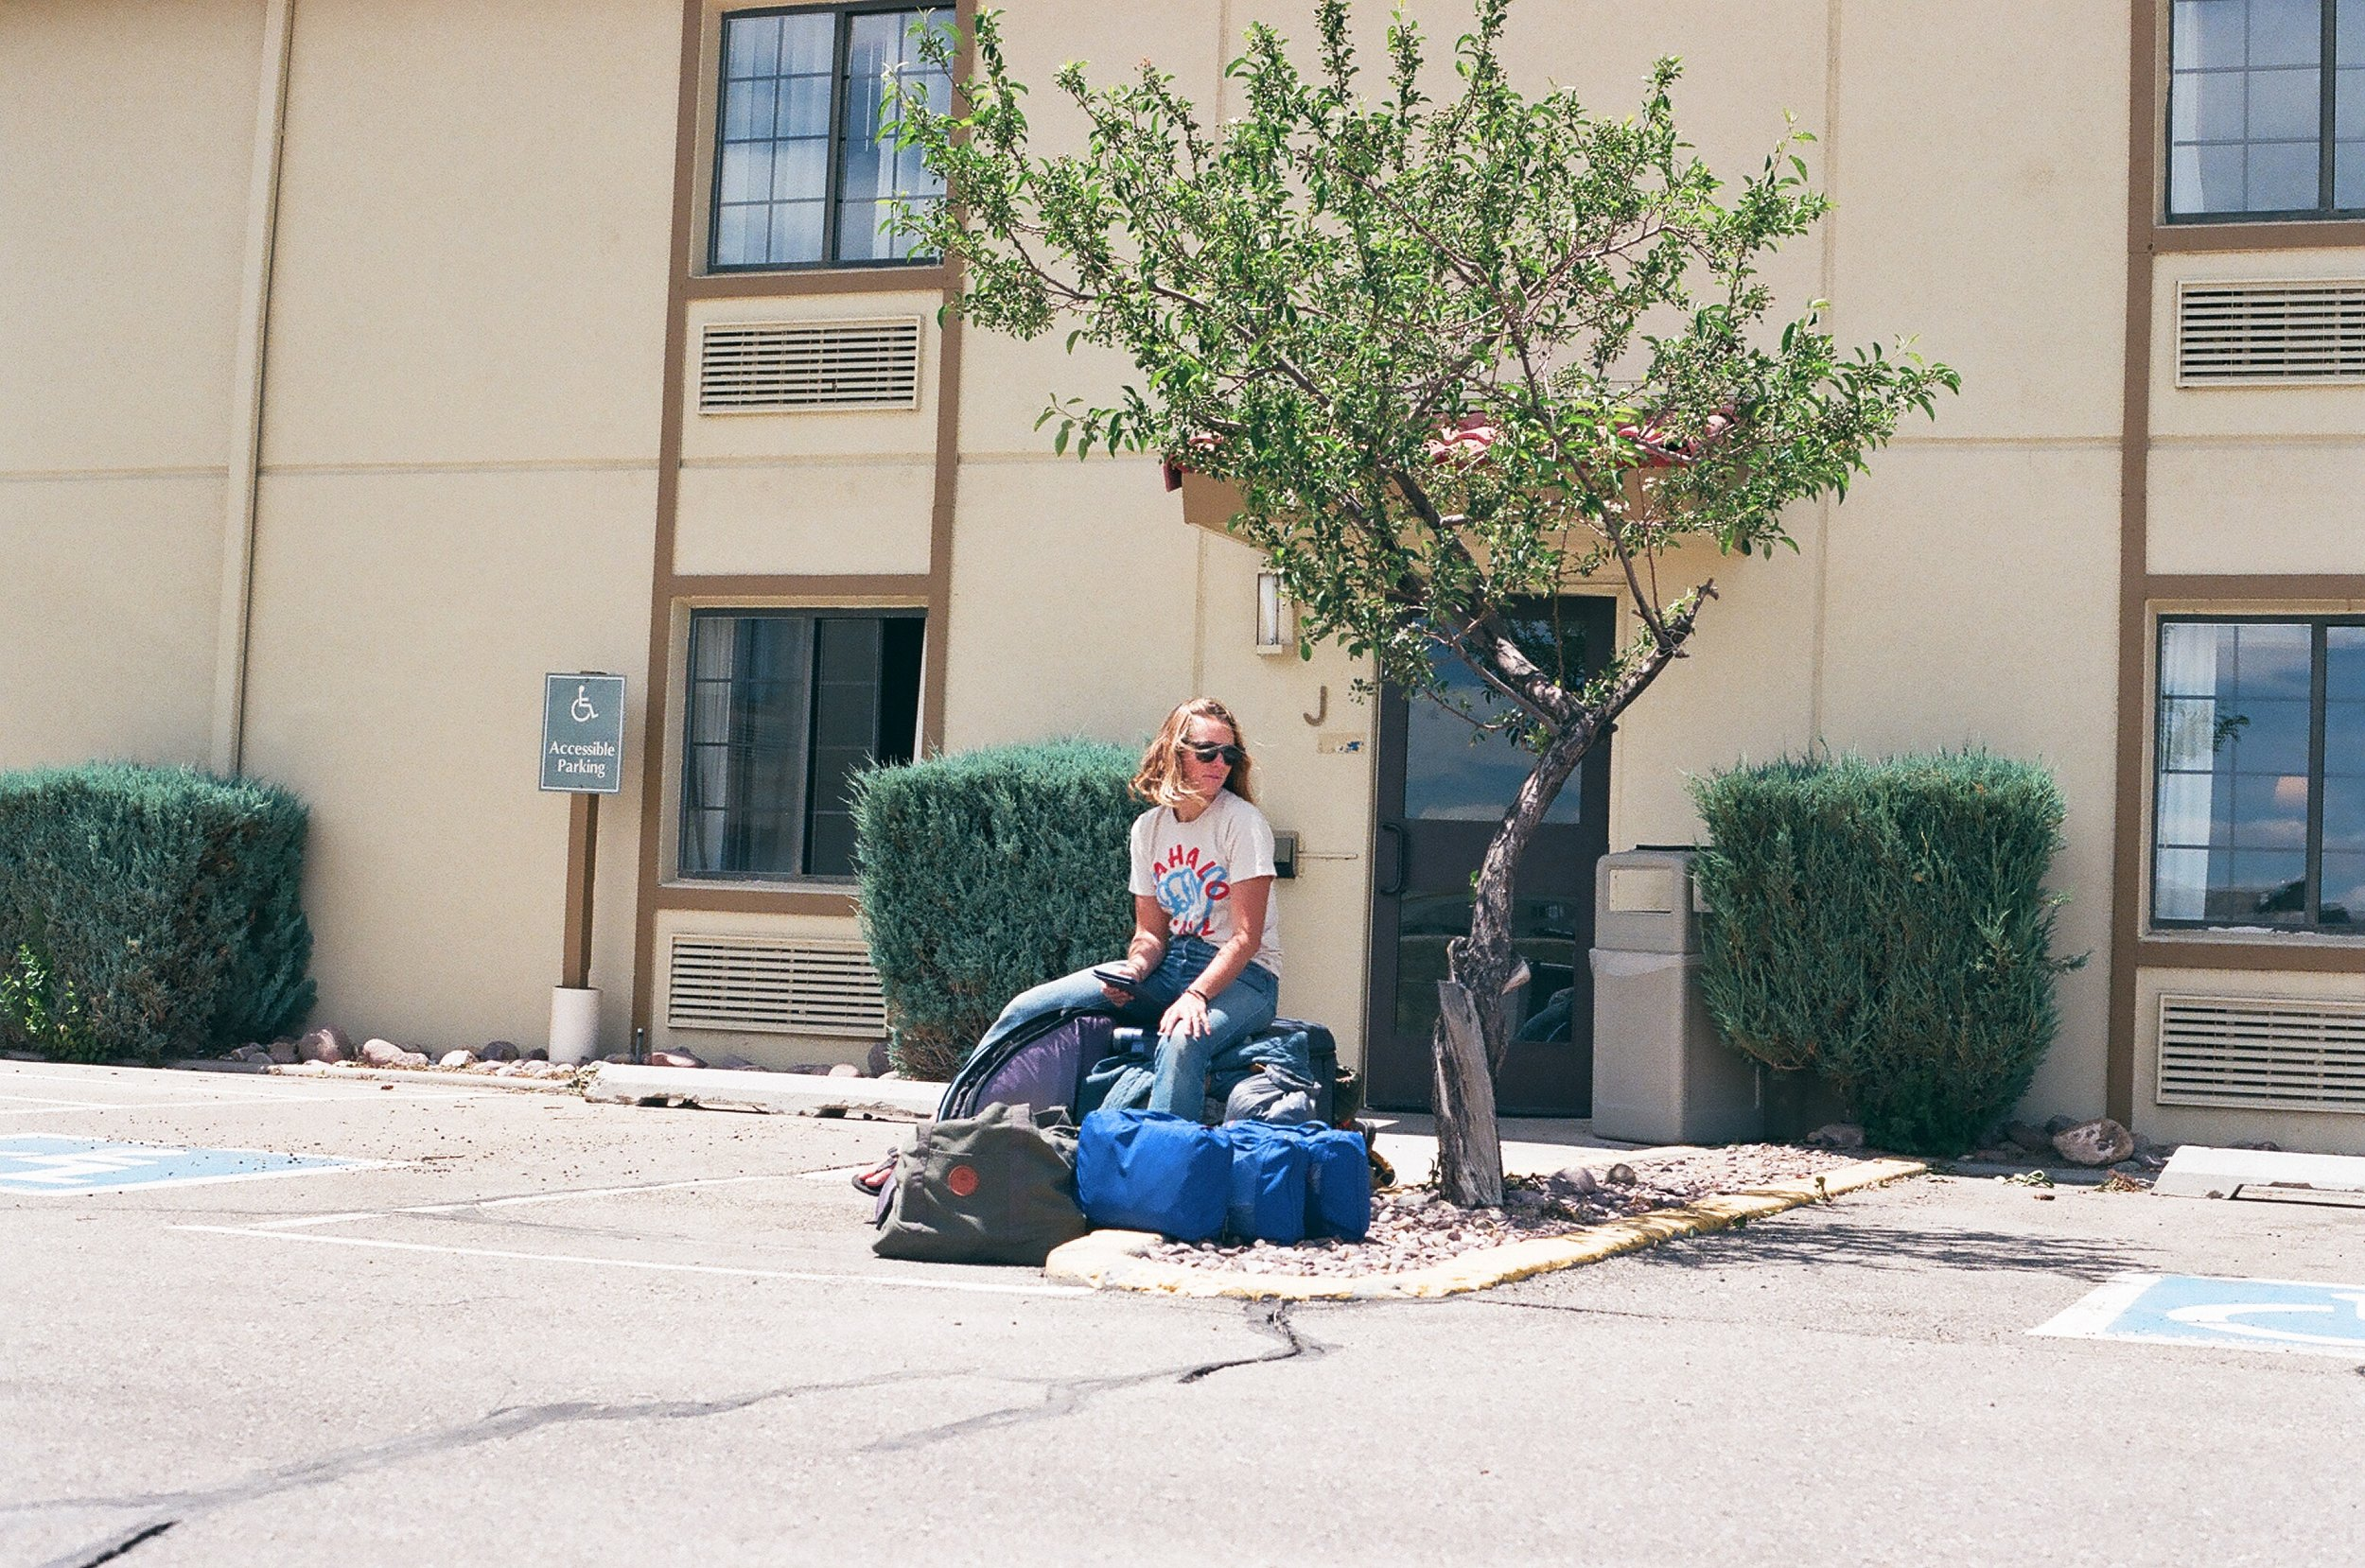 MAK hanging out with all of our belongings outside of our hotel room, 35mm